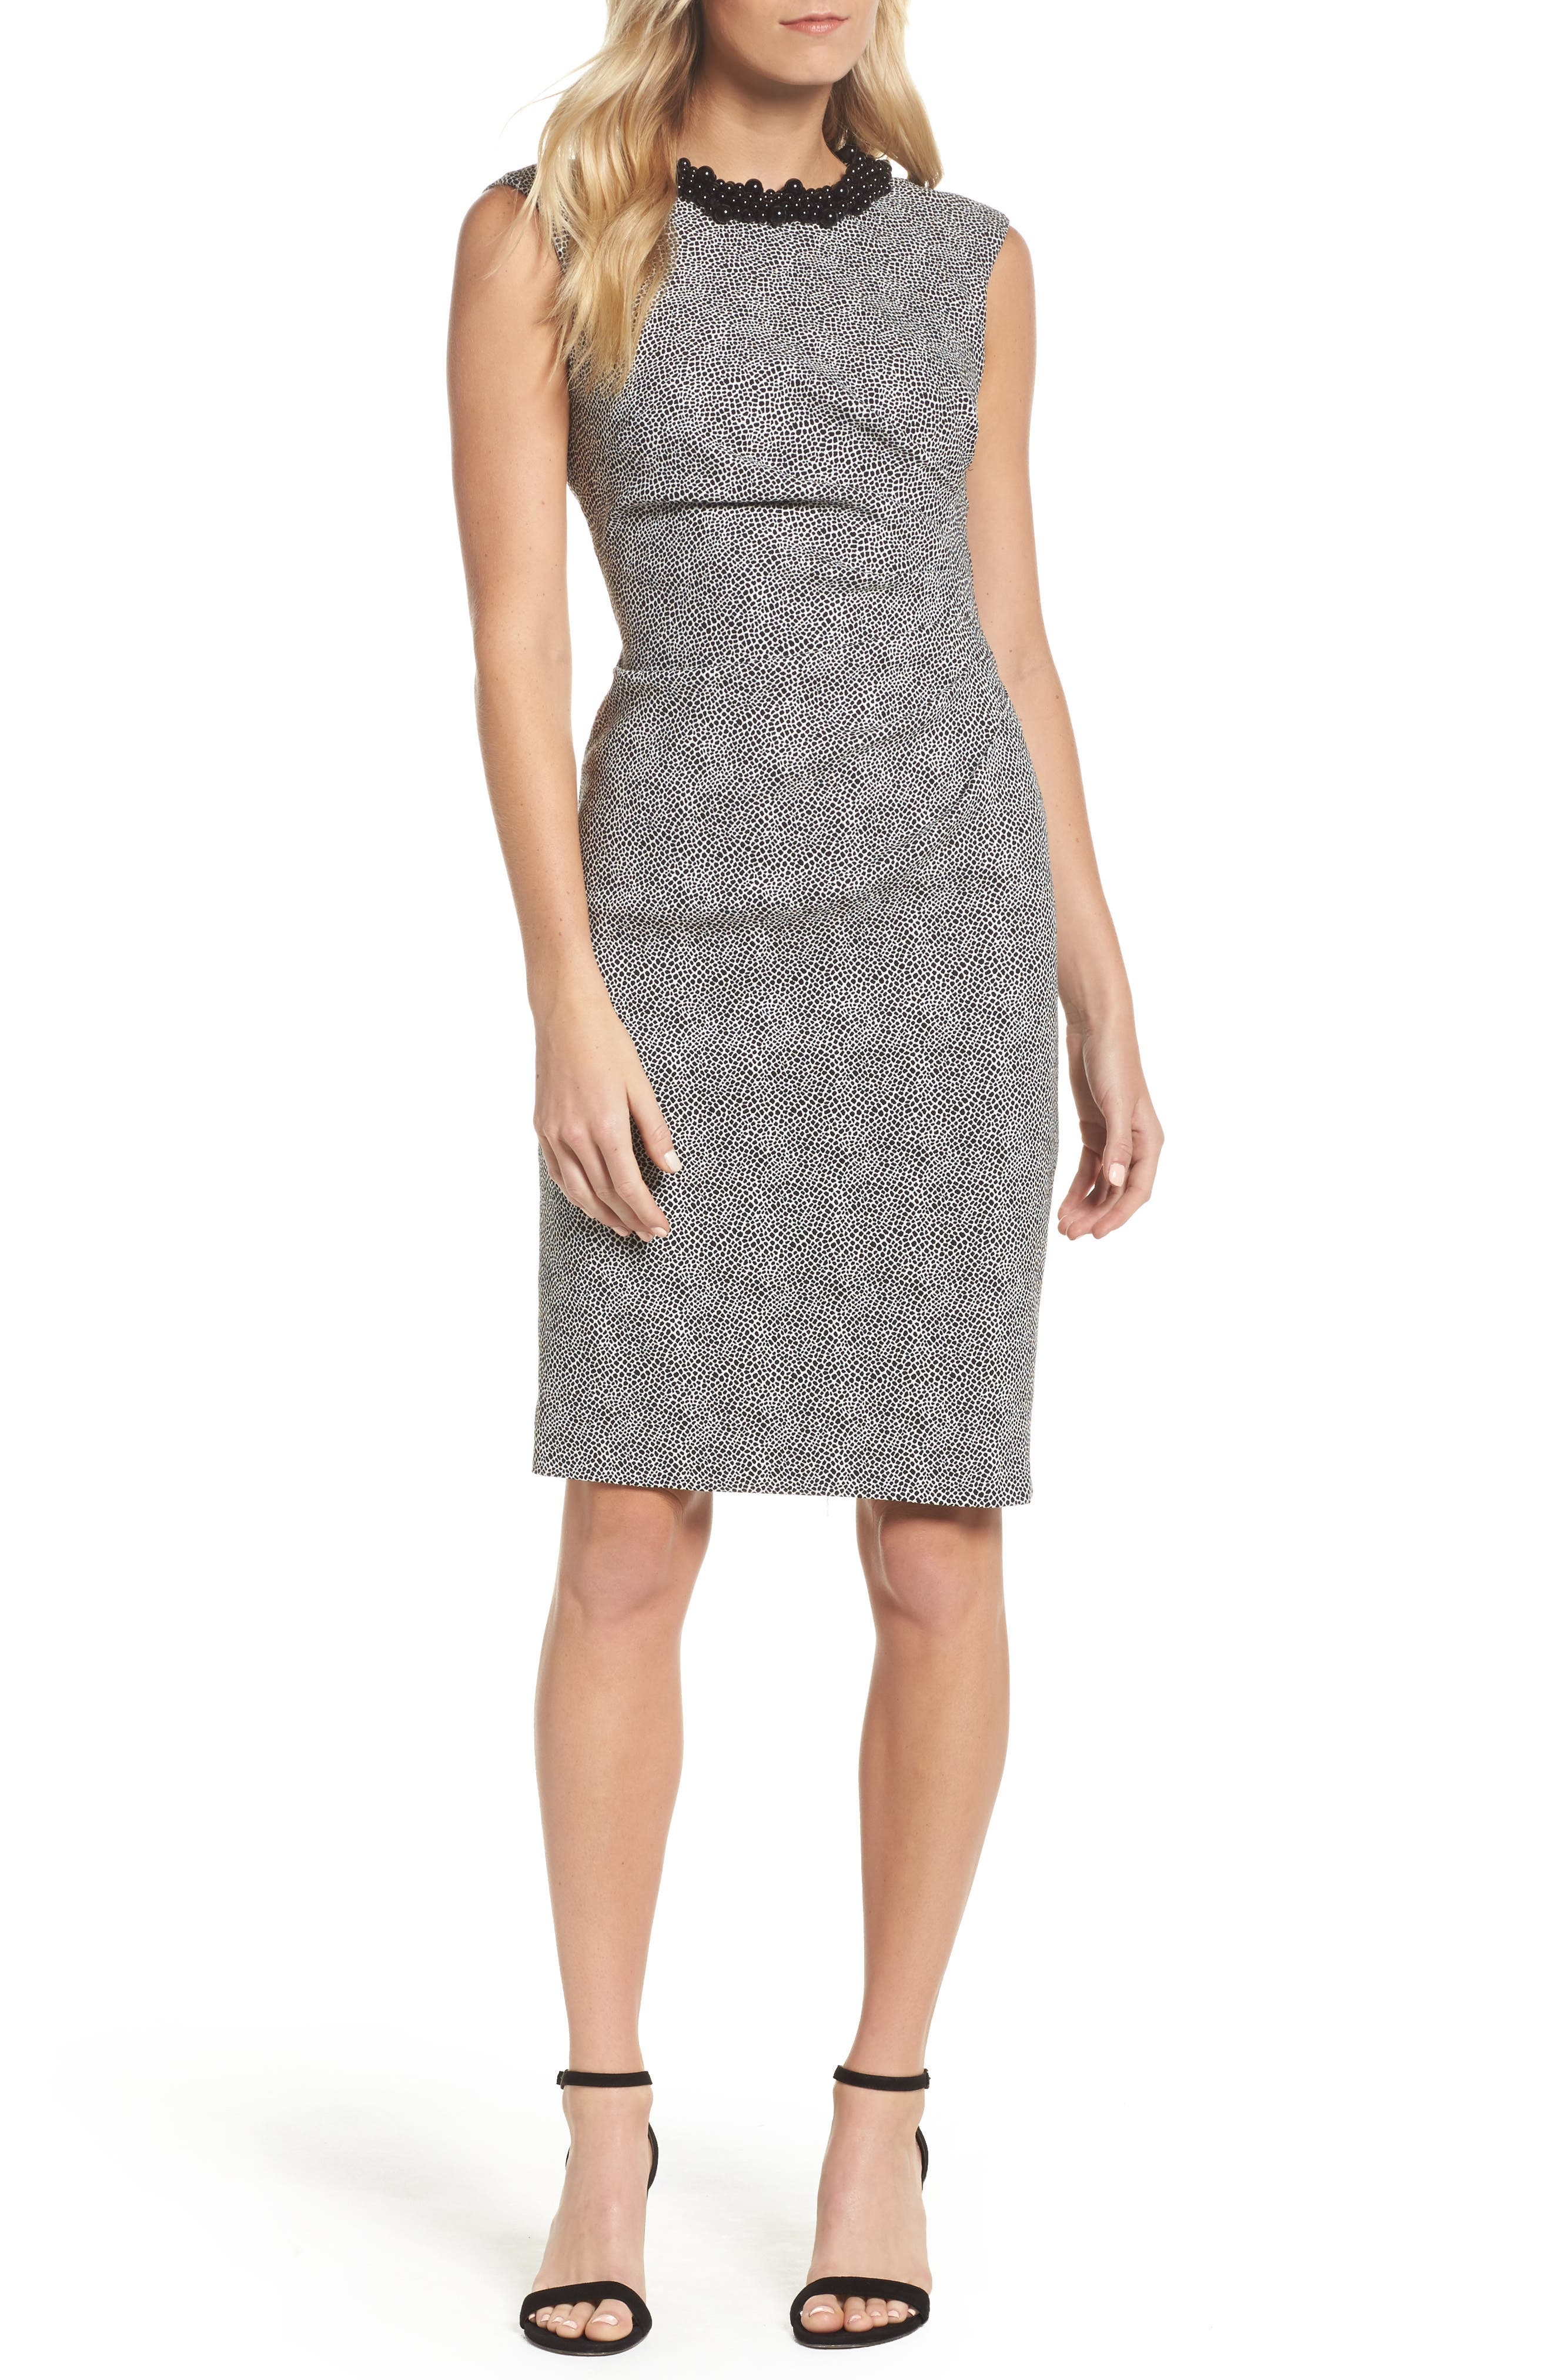 Embellished Jacquard Sheath Dress,                             Main thumbnail 1, color,                             001